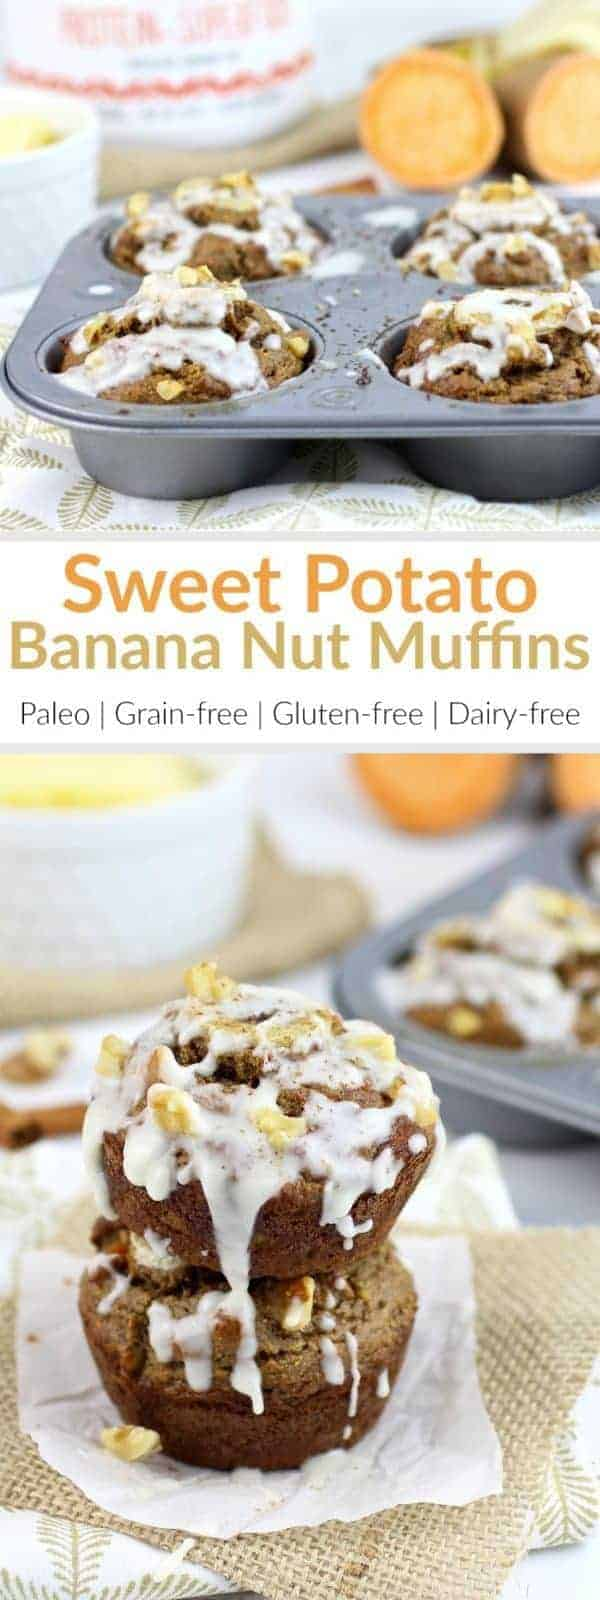 Leftover sweet potatoes and ripe bananas come together to create these perfectly-textureed, high-protein, Paleo-friendly, Grain-free Sweet Potato Banana Nut Muffins | therealfoodrds.com